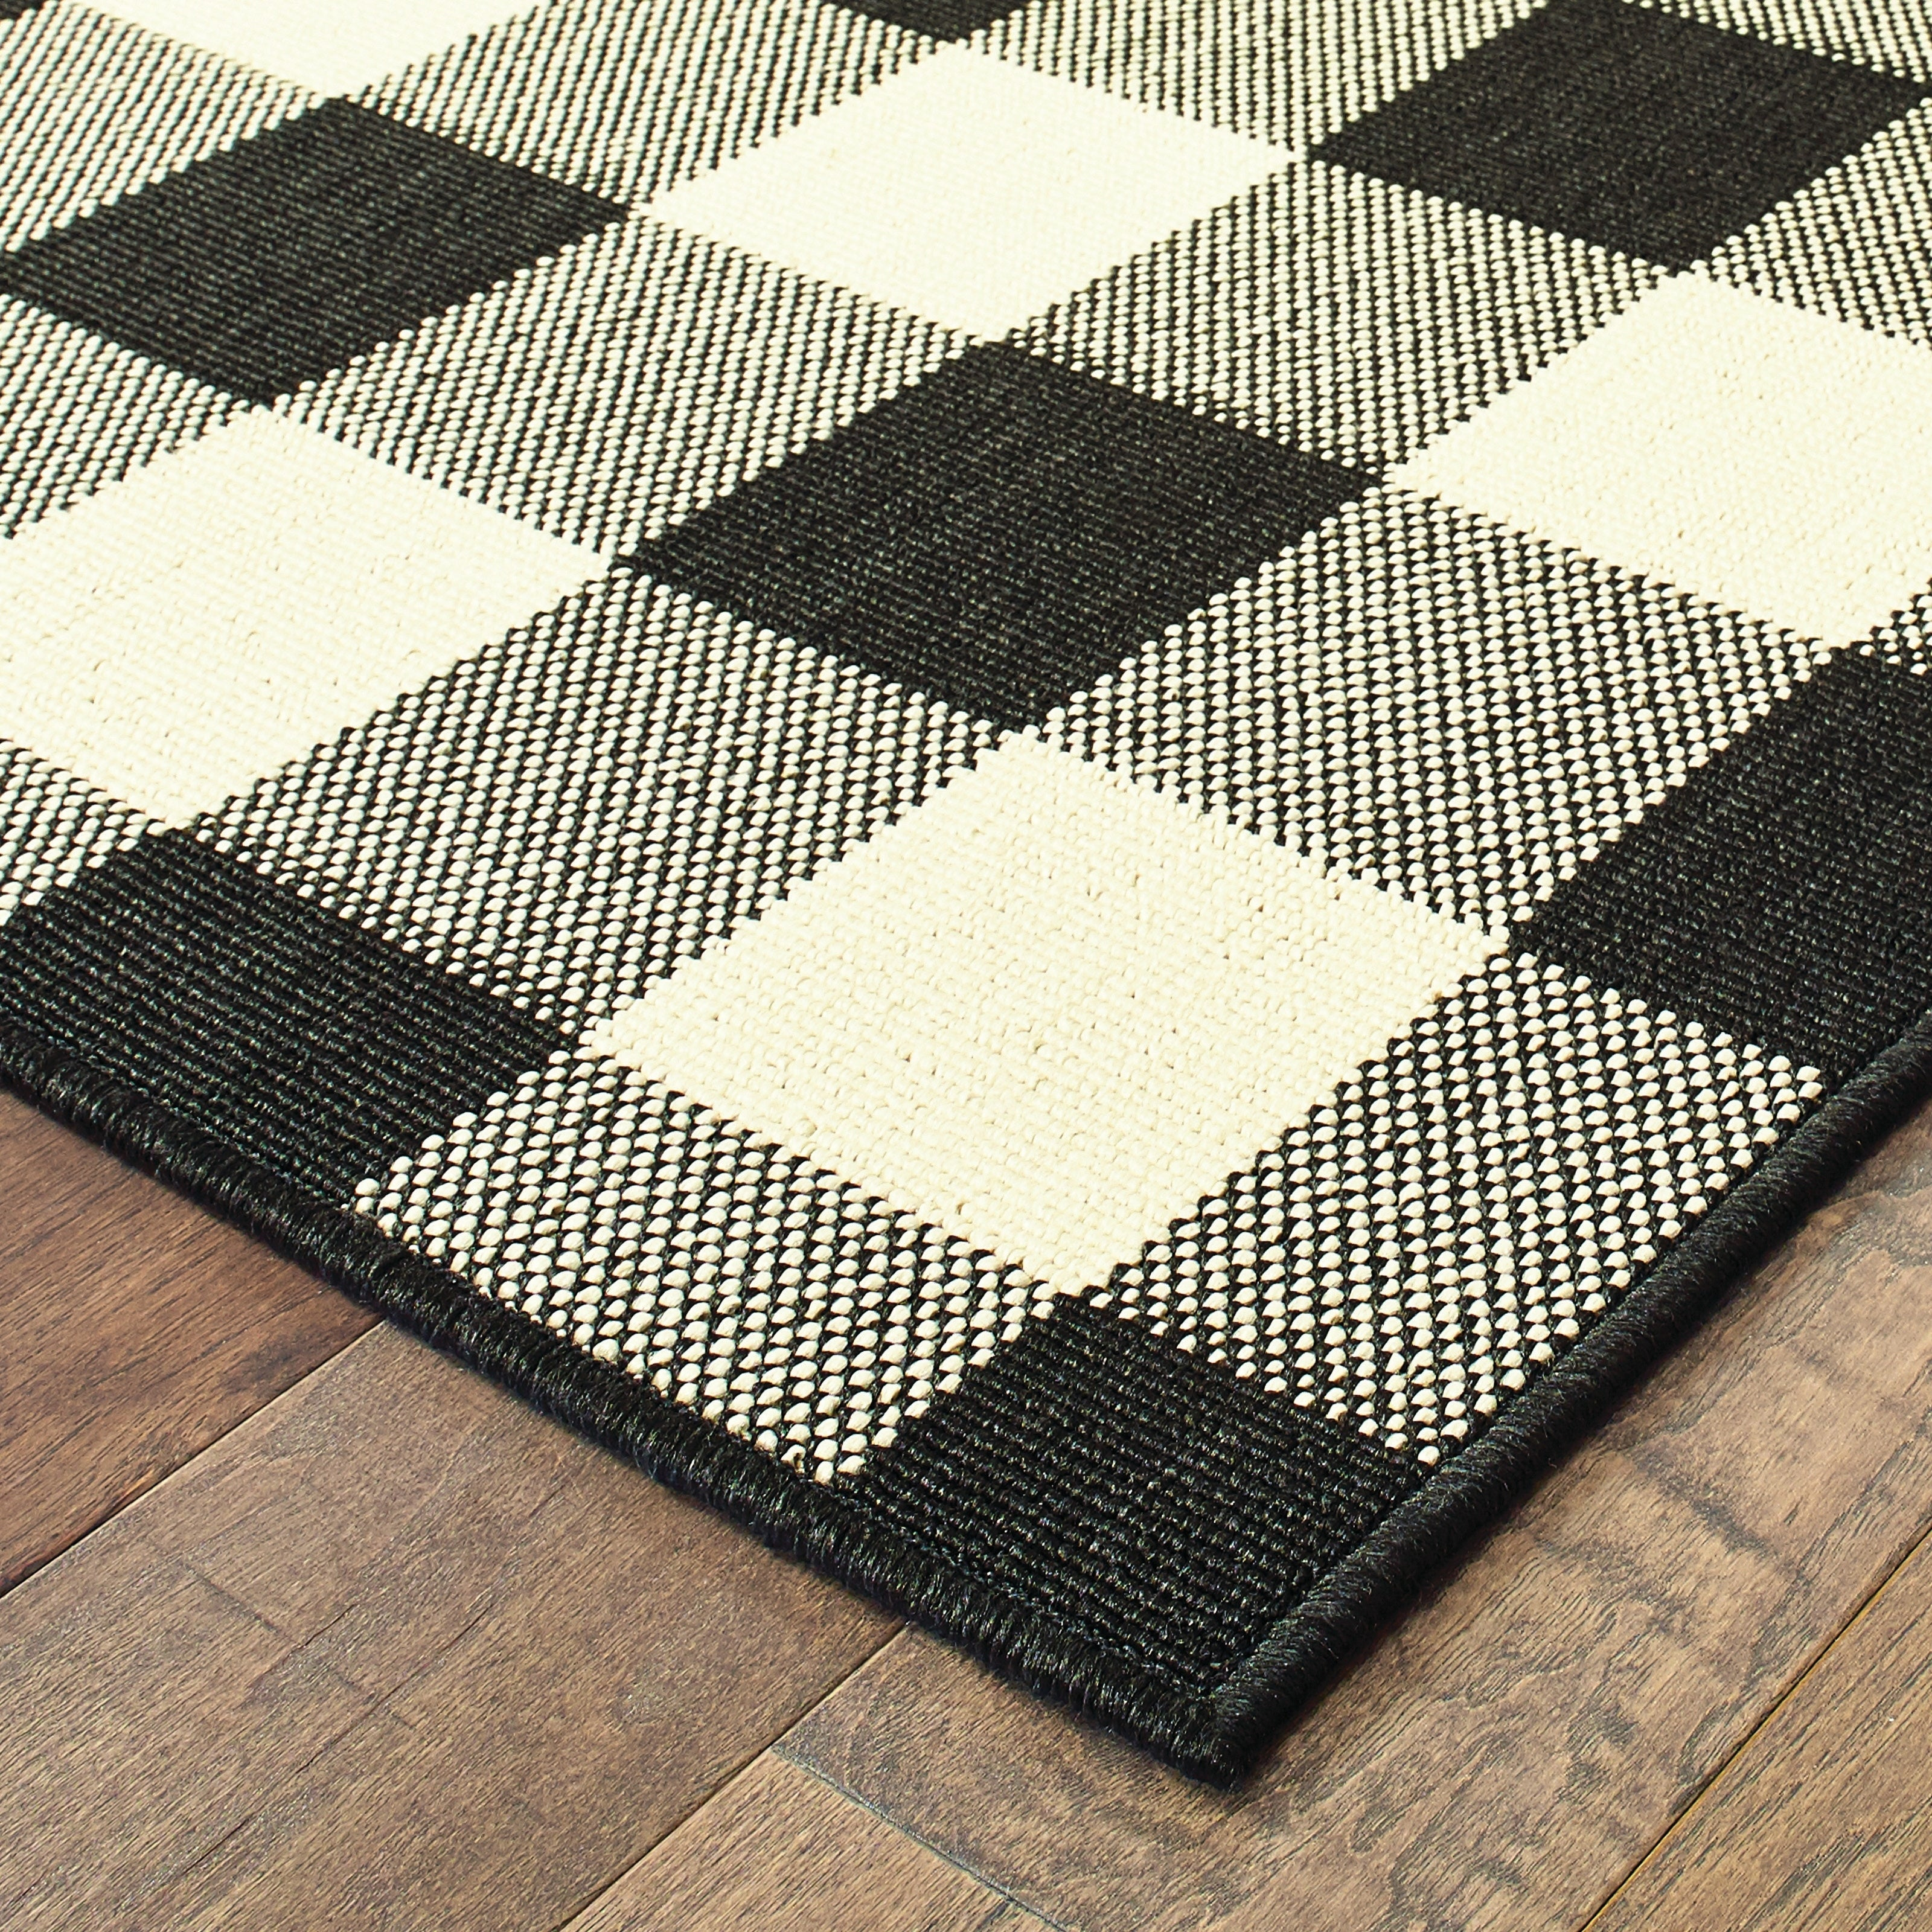 The Gray Barn Garland Gale Gingham Check Black Ivory Loop Pile Indoor Outdoor Area Rug 7 10 X 10 10